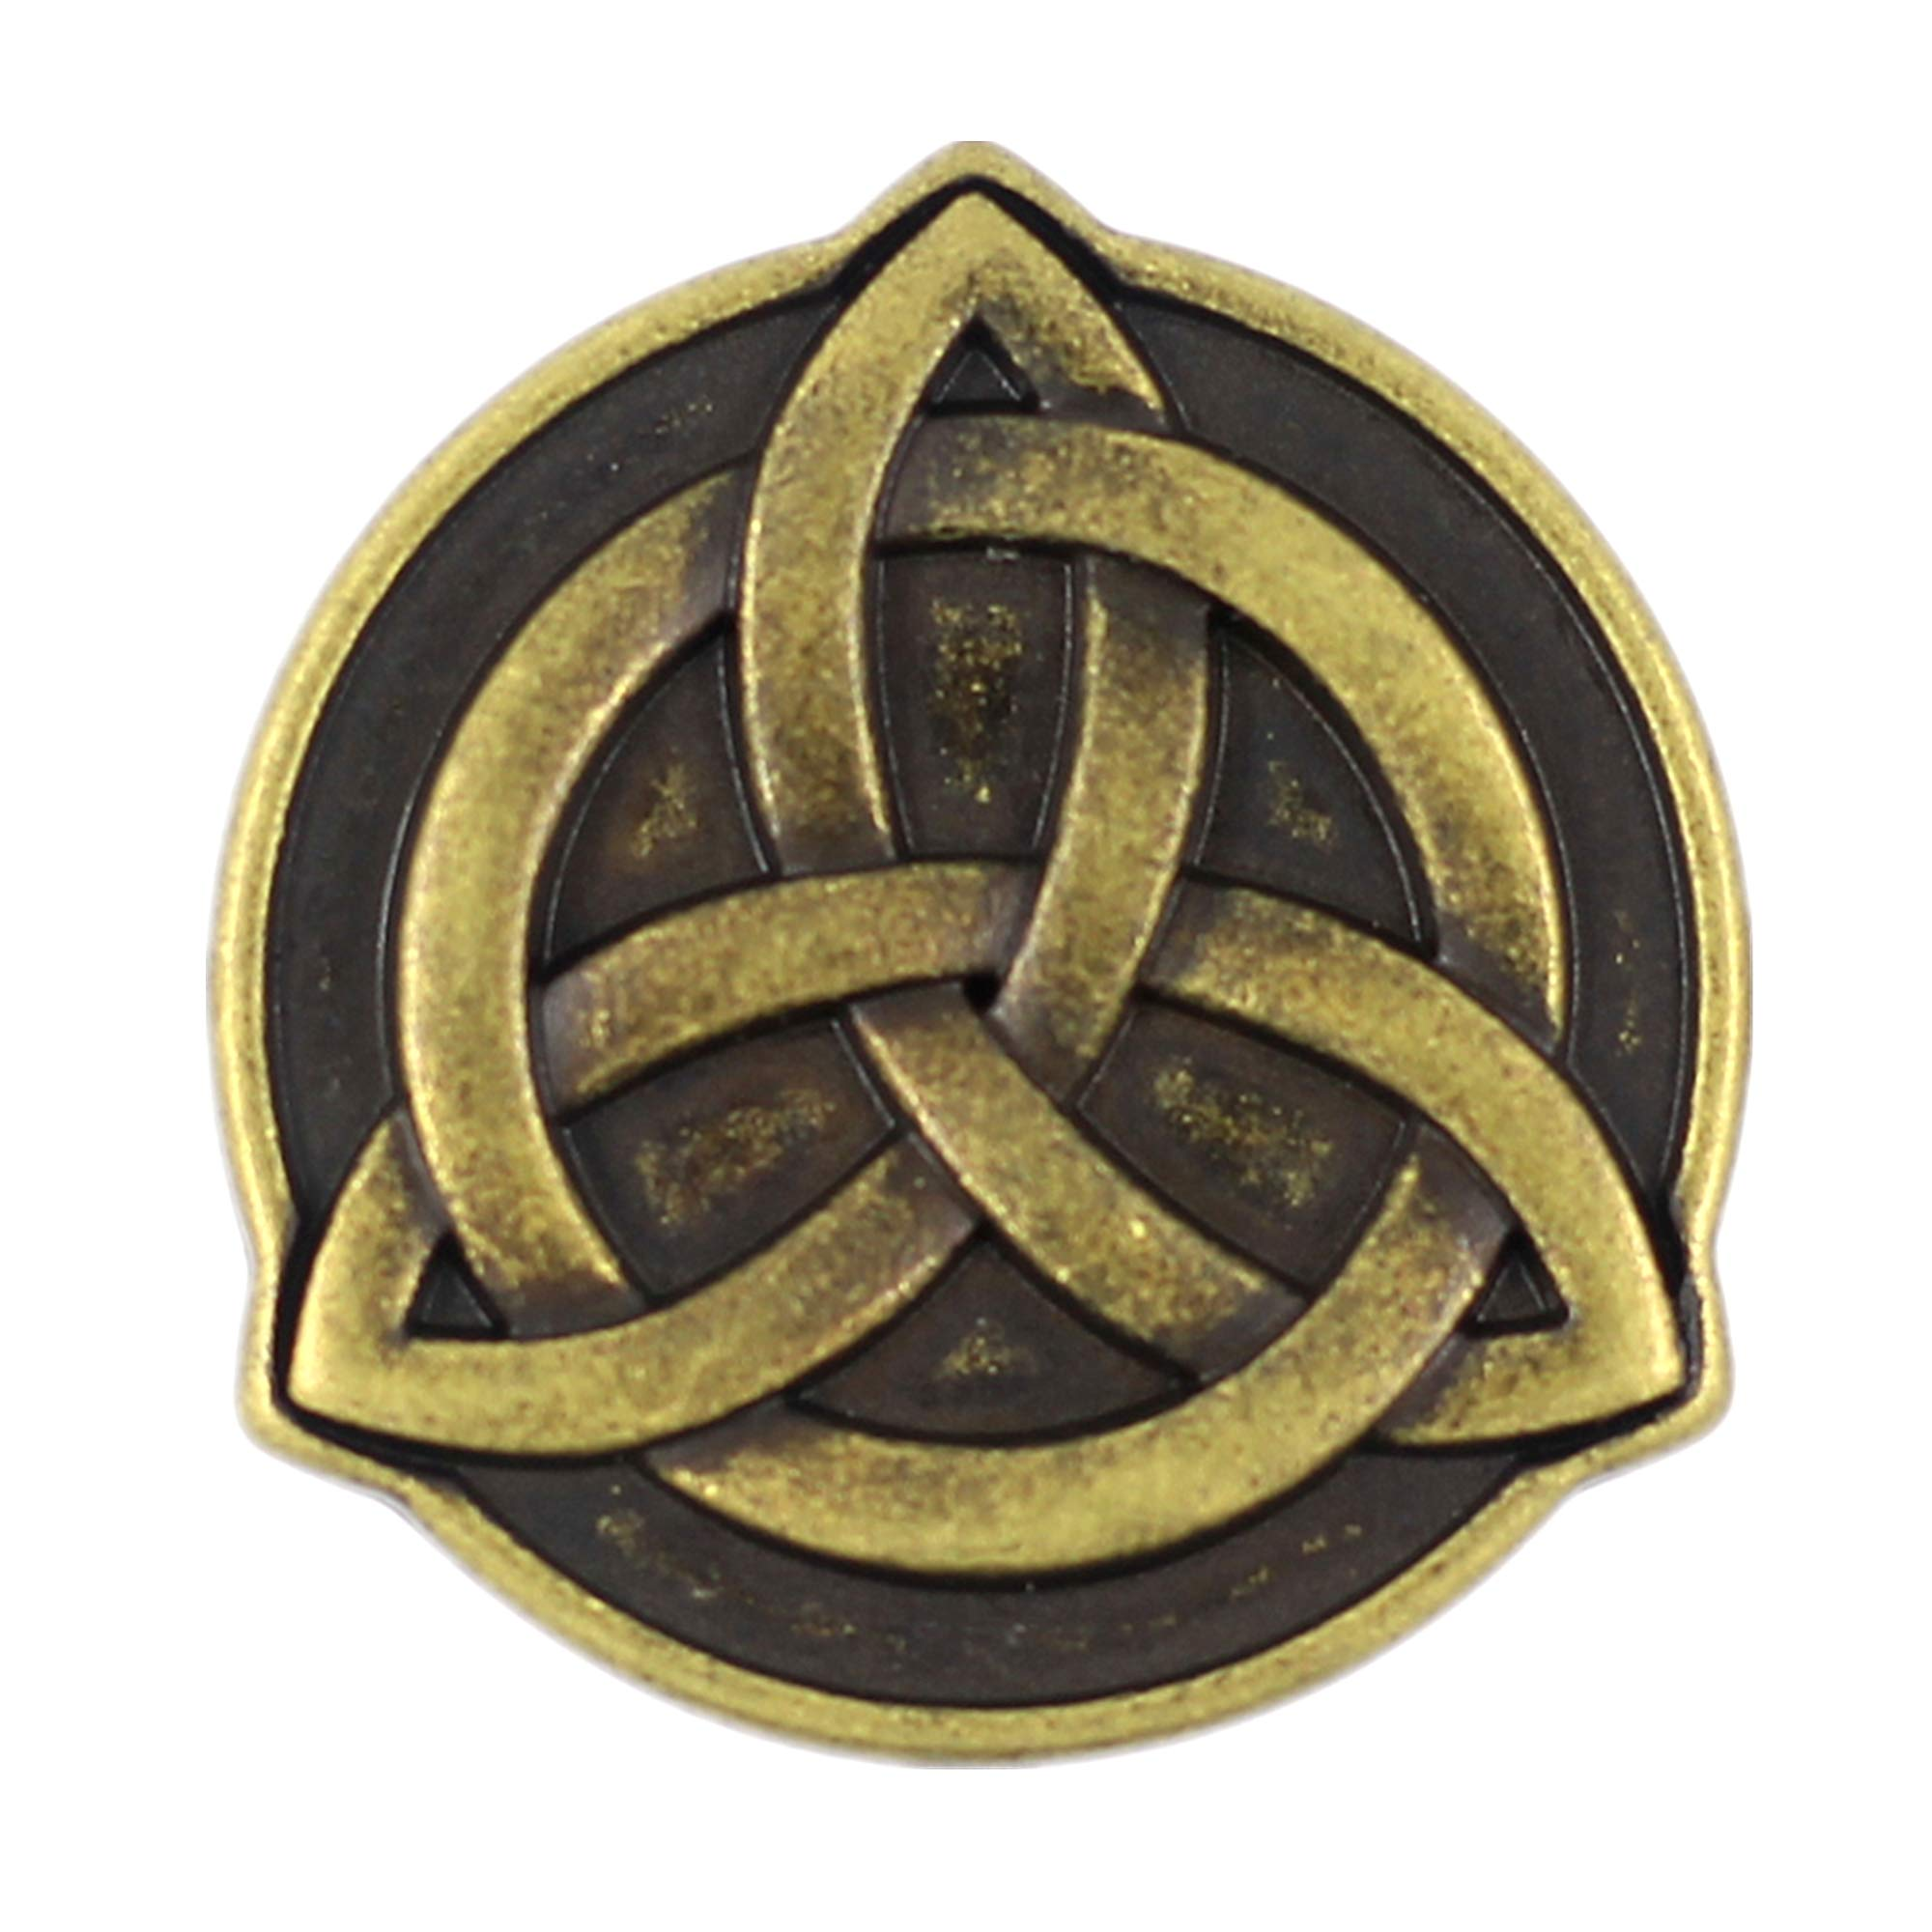 Bezelry 10 Pieces Celtic Trinity Knot Metal Shank Buttons. 22mm (7/8 inch)(Antique Brass)